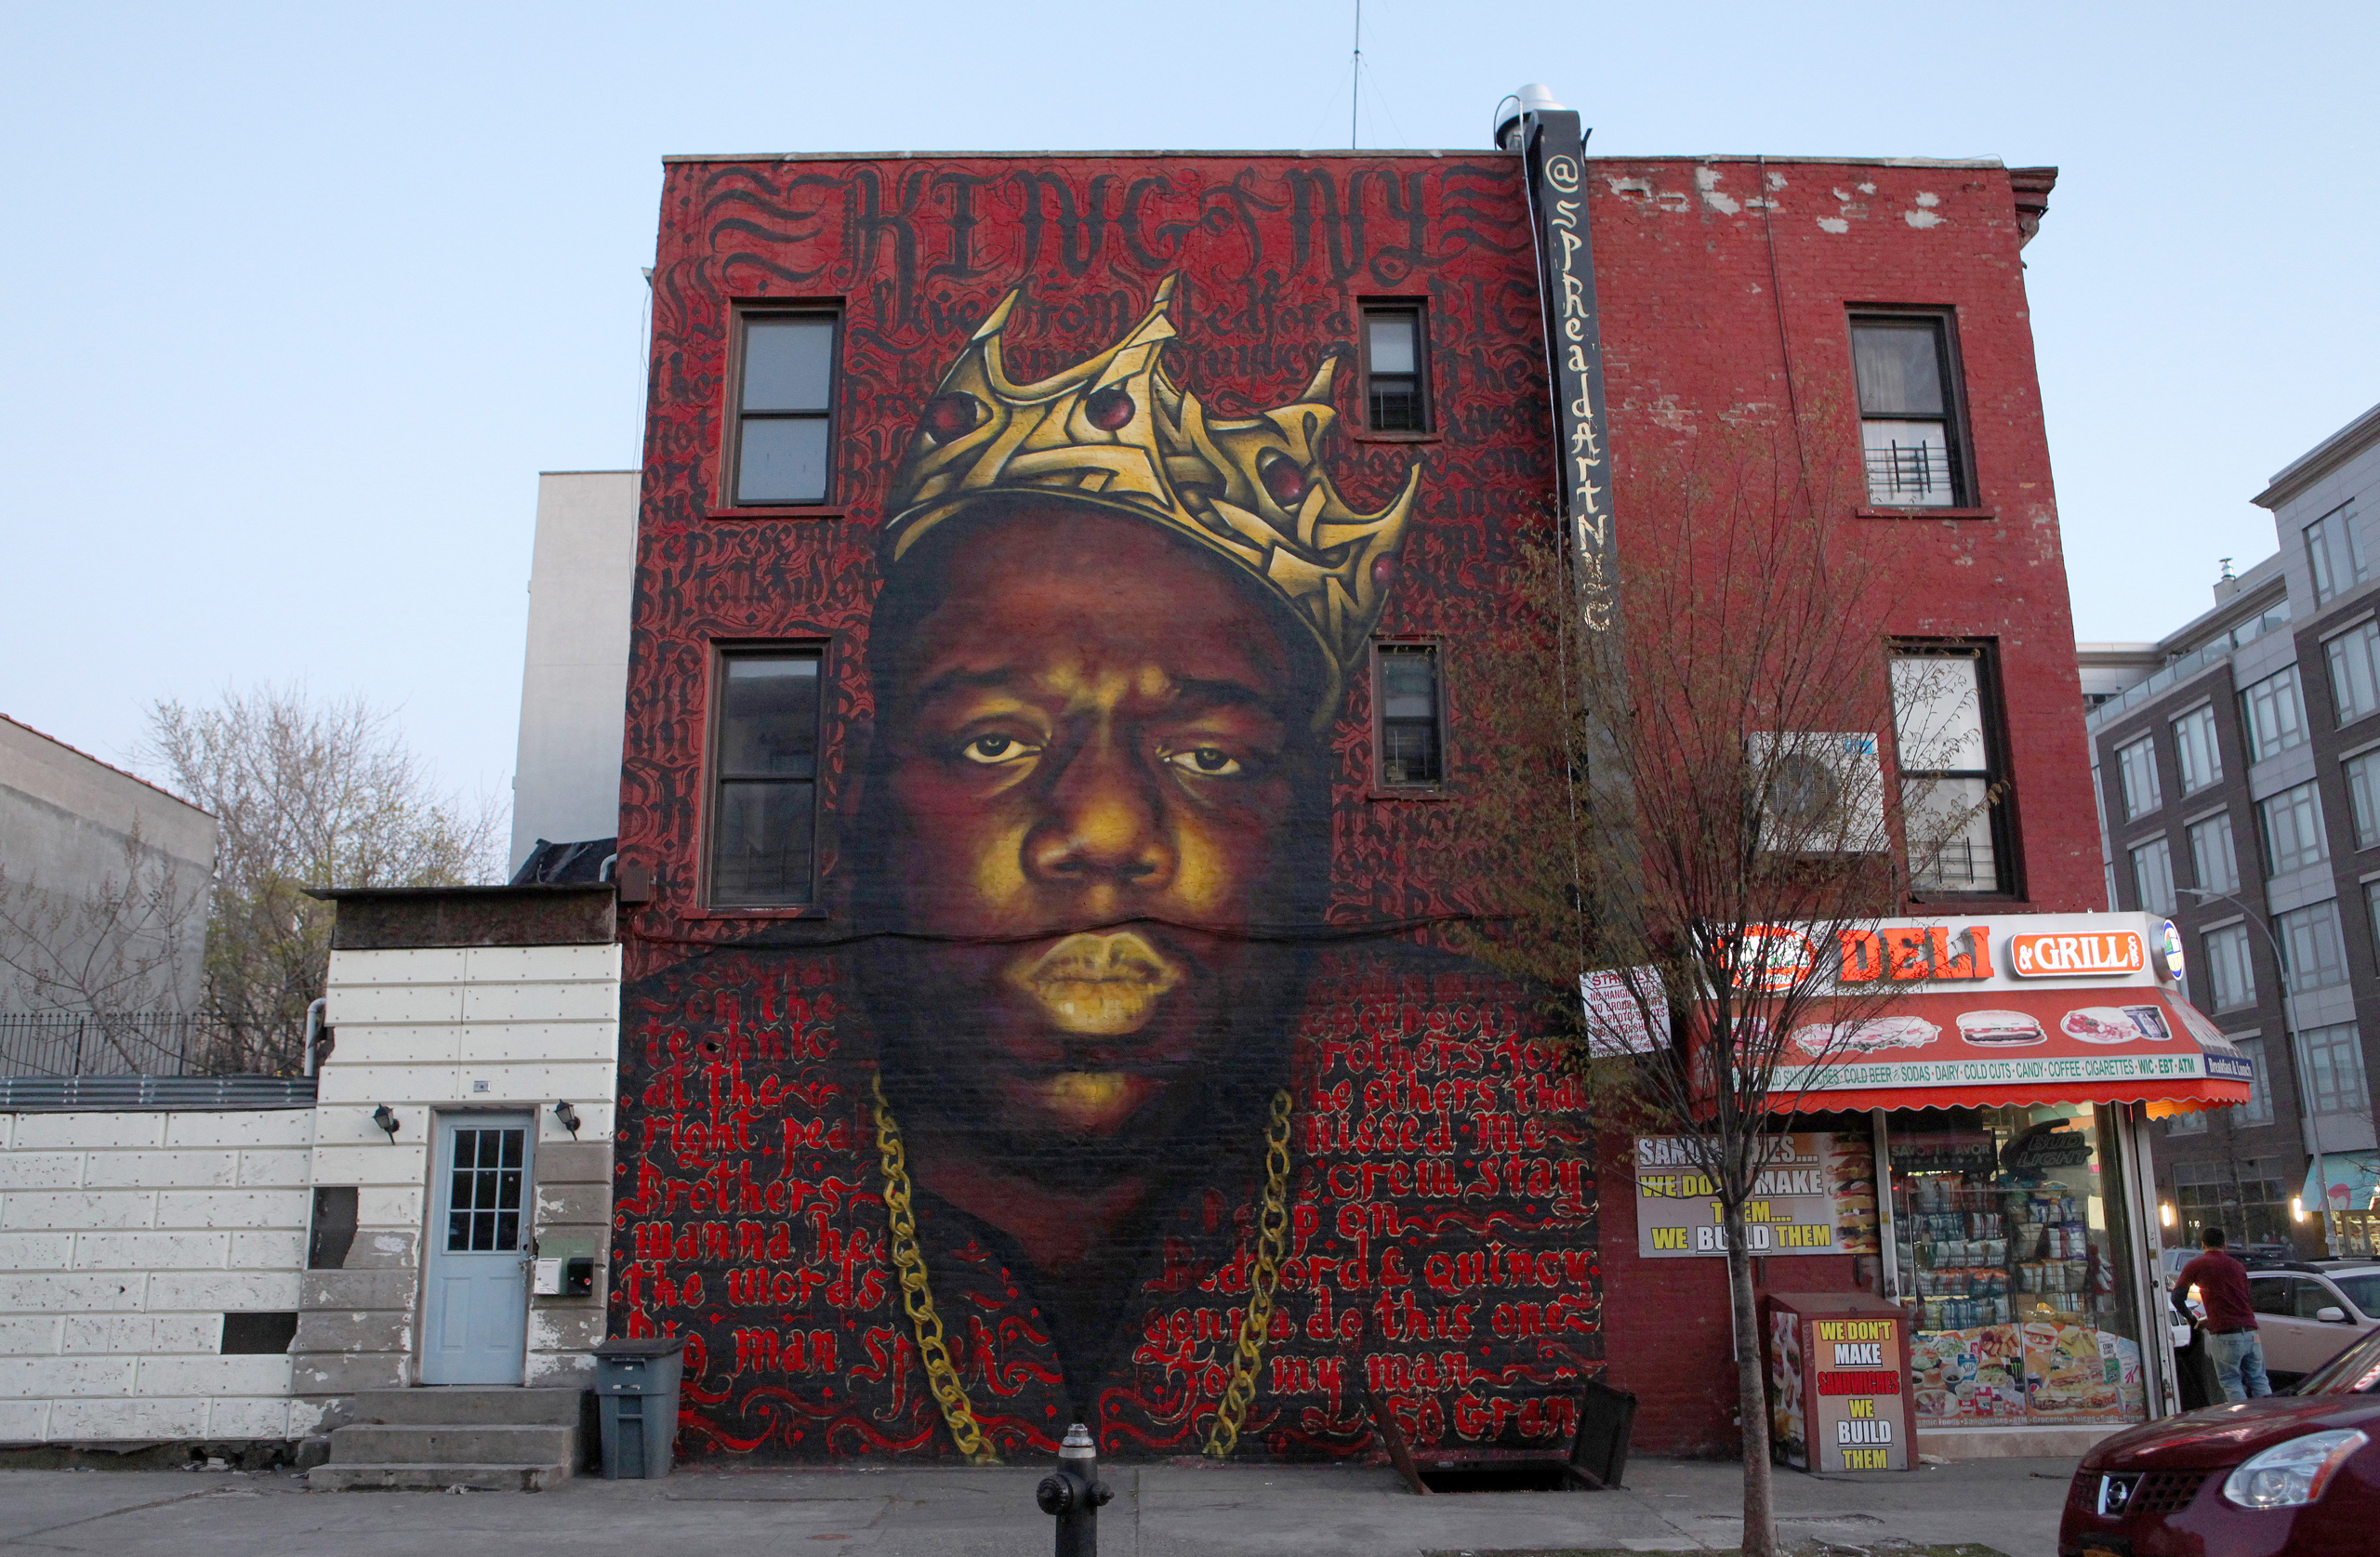 Scott 'Zimer' Zimmerman and Naoufal 'Rocko' Alaoui's mural of late rapper Christopher 'Notorious B.I.G.' Wallace in the Bedford-Stuyvesant neighborhood of Brooklyn, New York on April 15, 2016.